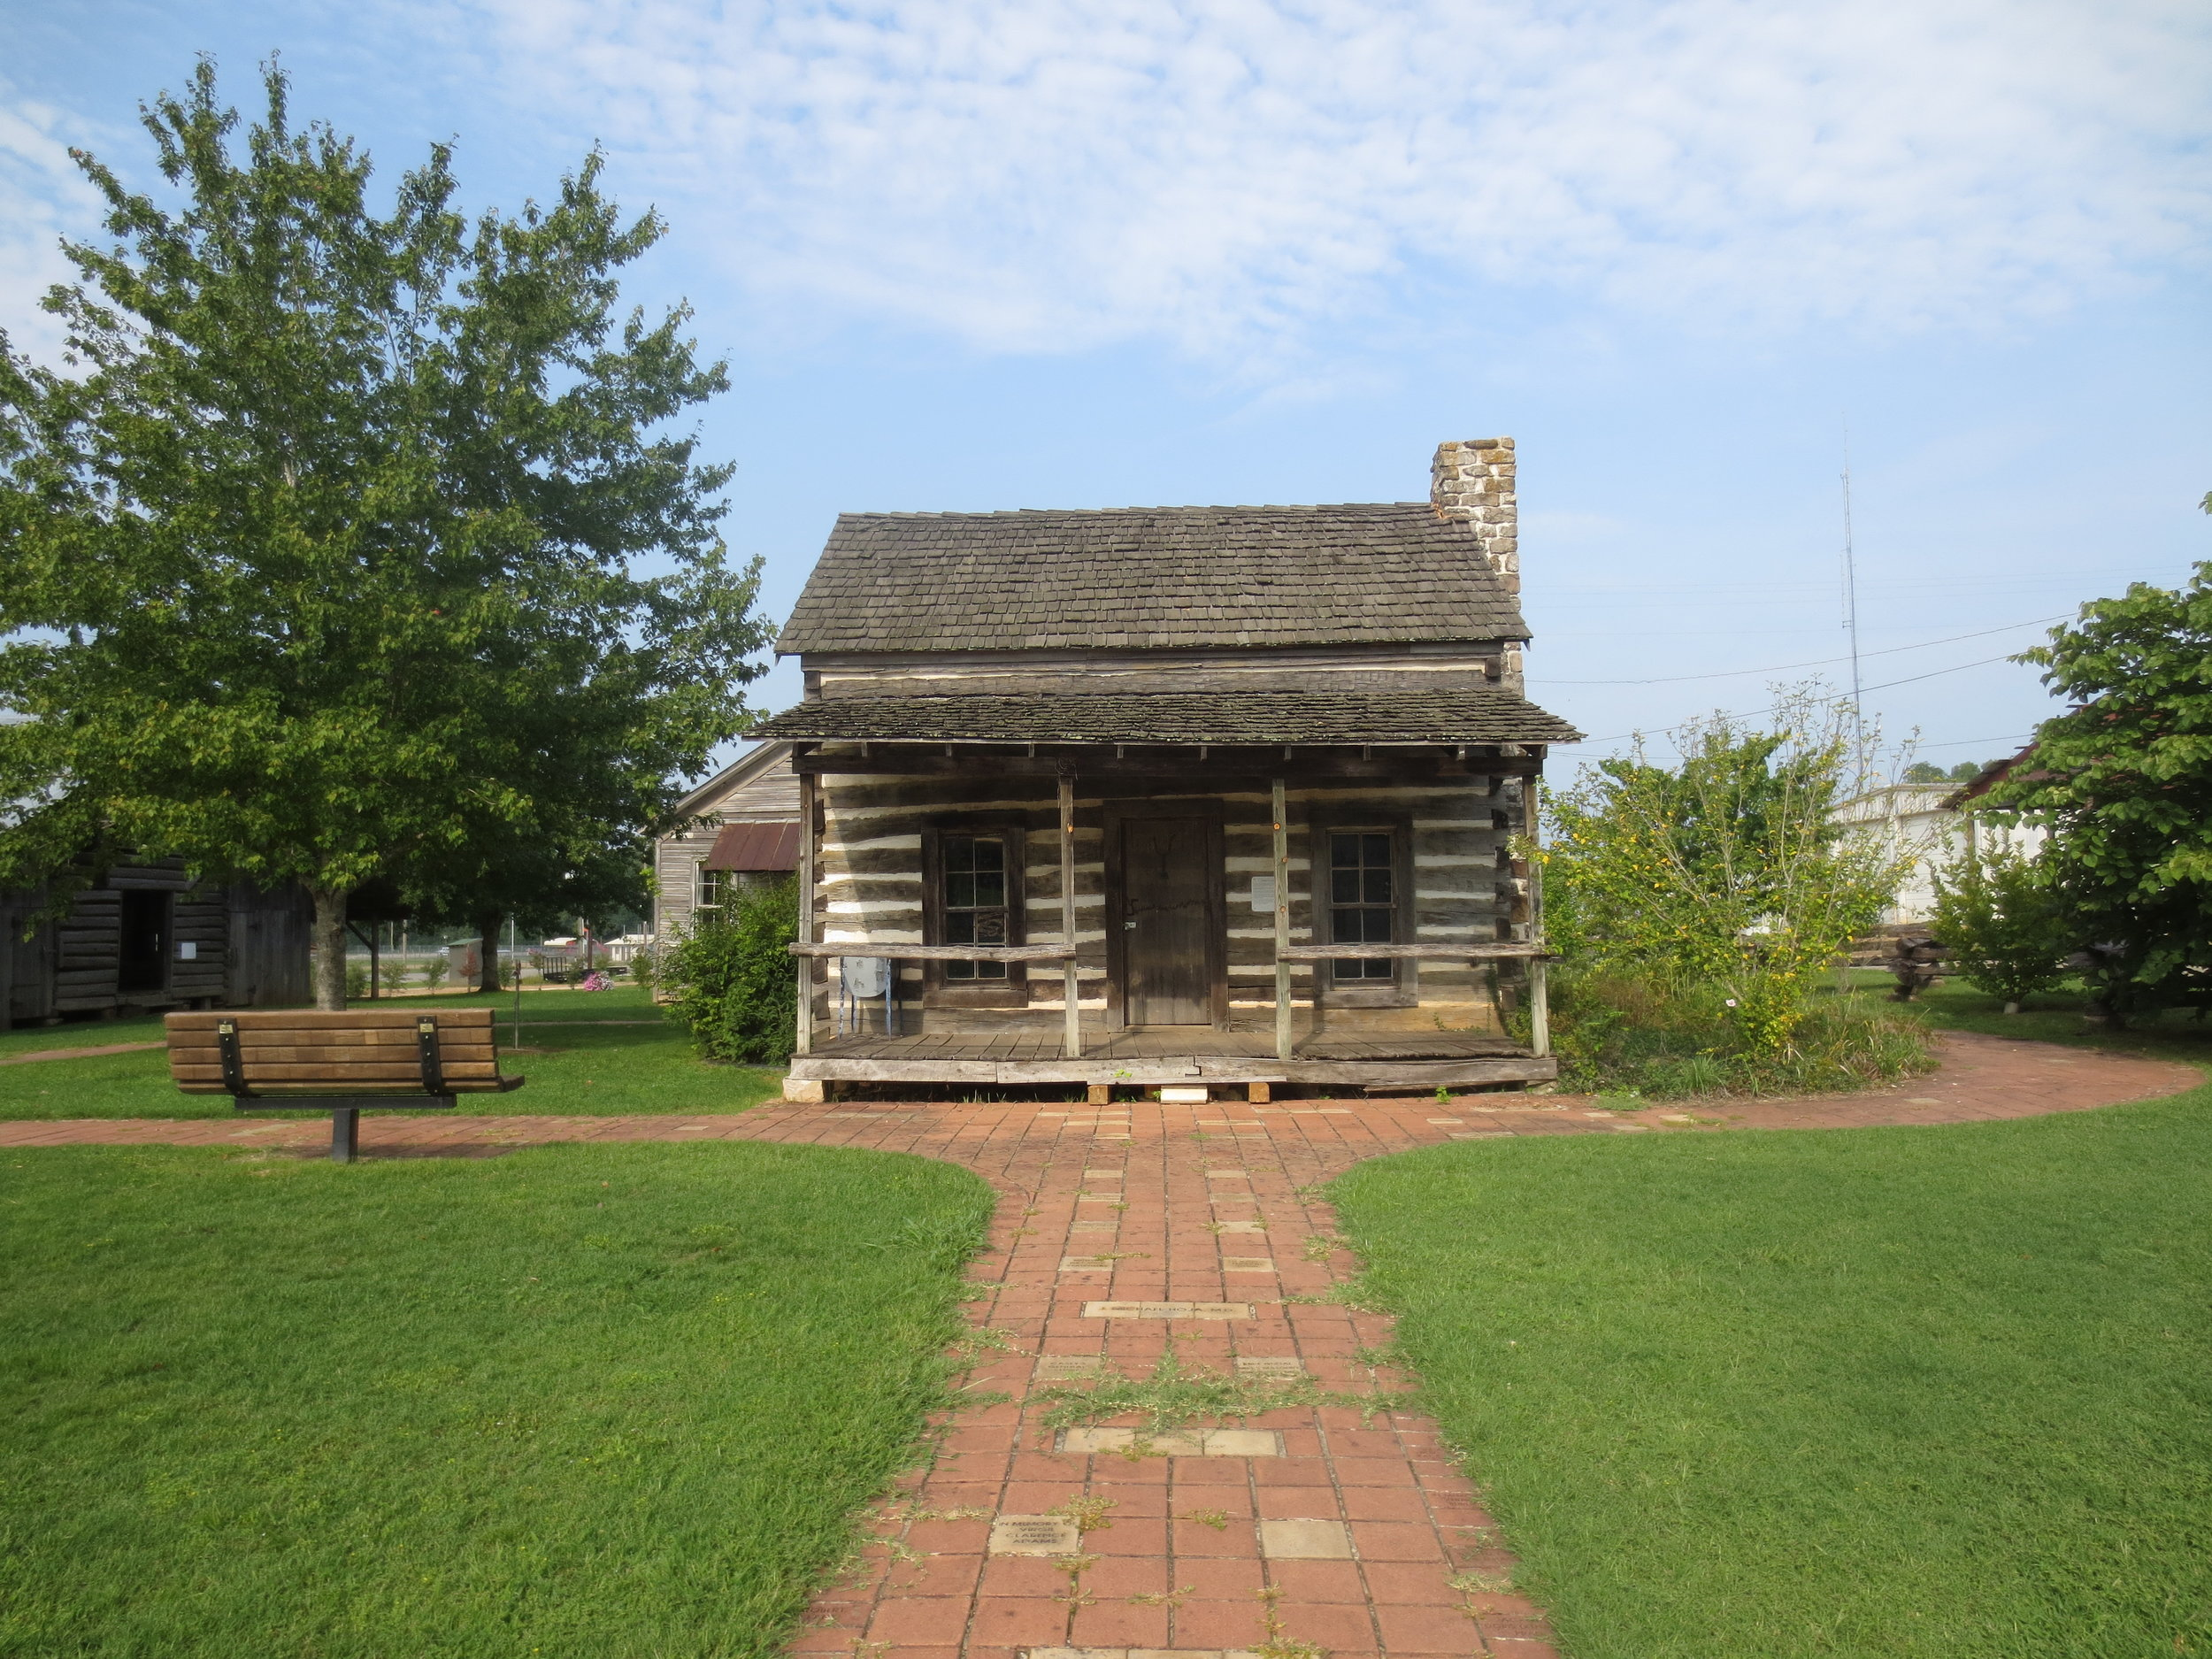 The Pioneer Cabin and the Donation Walk at the Heritage Homestead